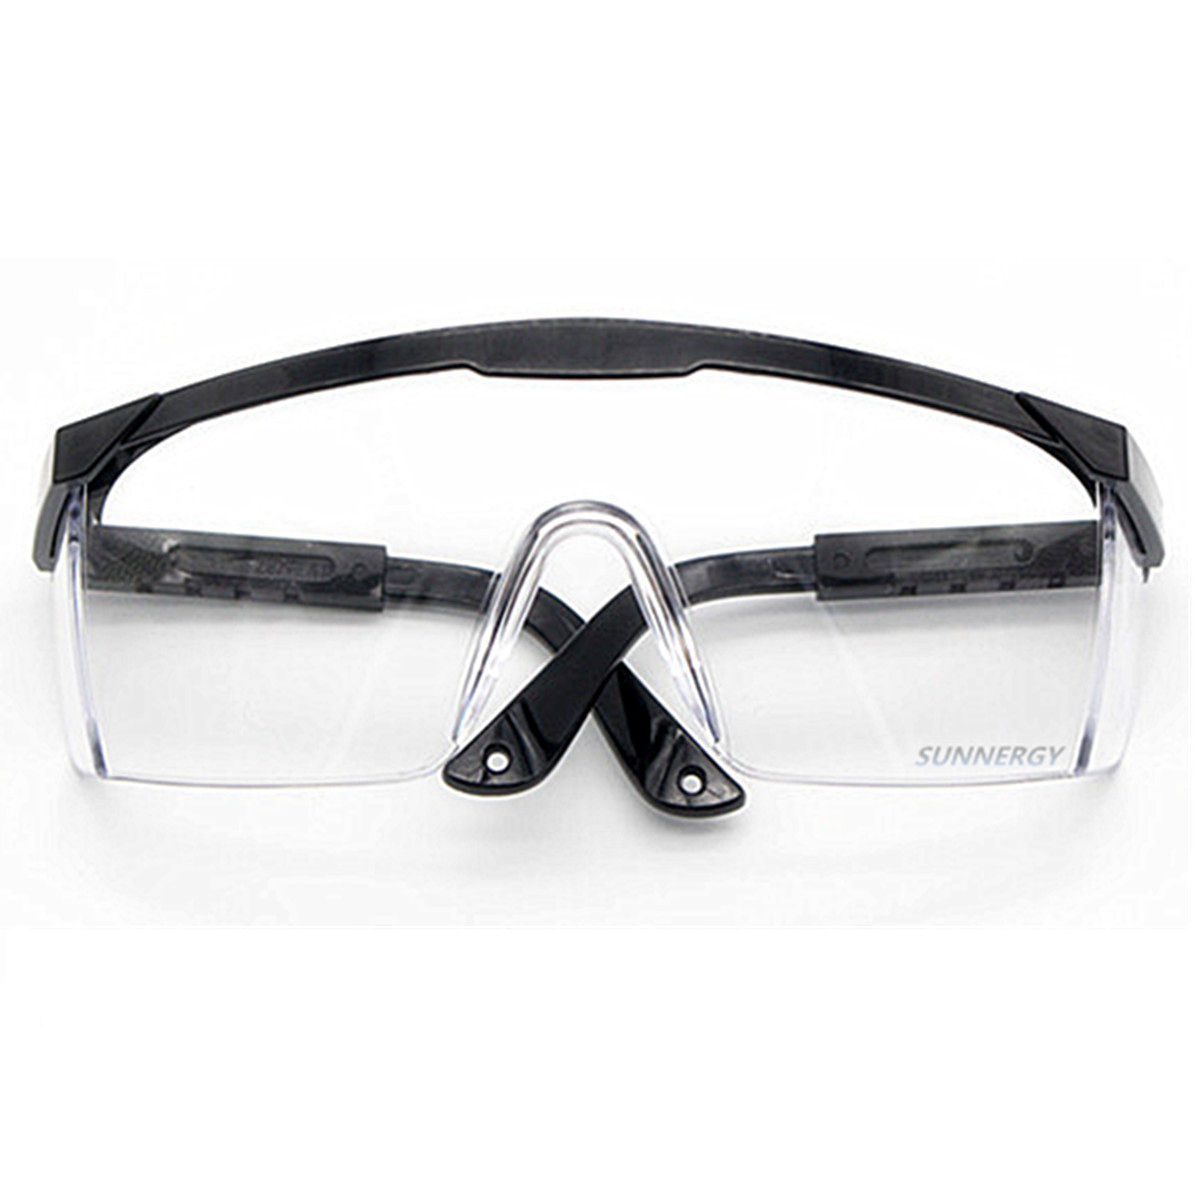 Hot Sales Anti-UV outdoor sports safety glasses anti scratch